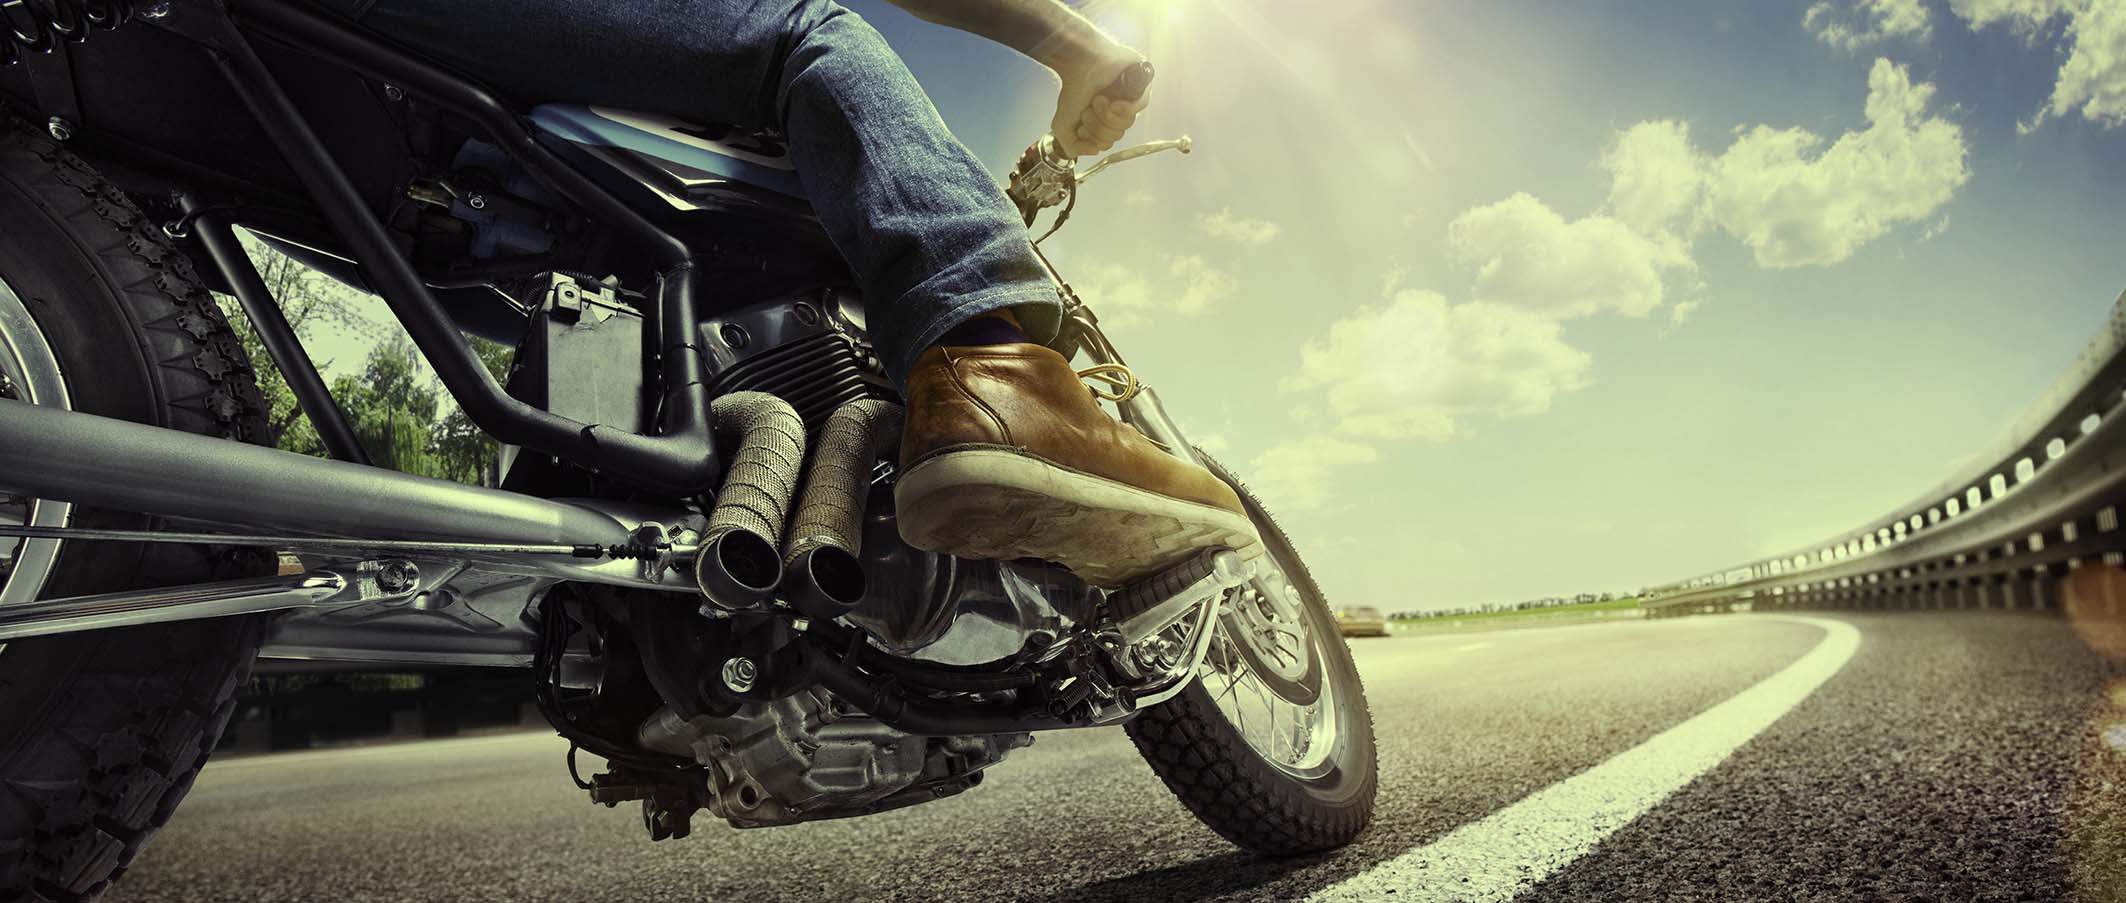 NH Motorcycle insurance